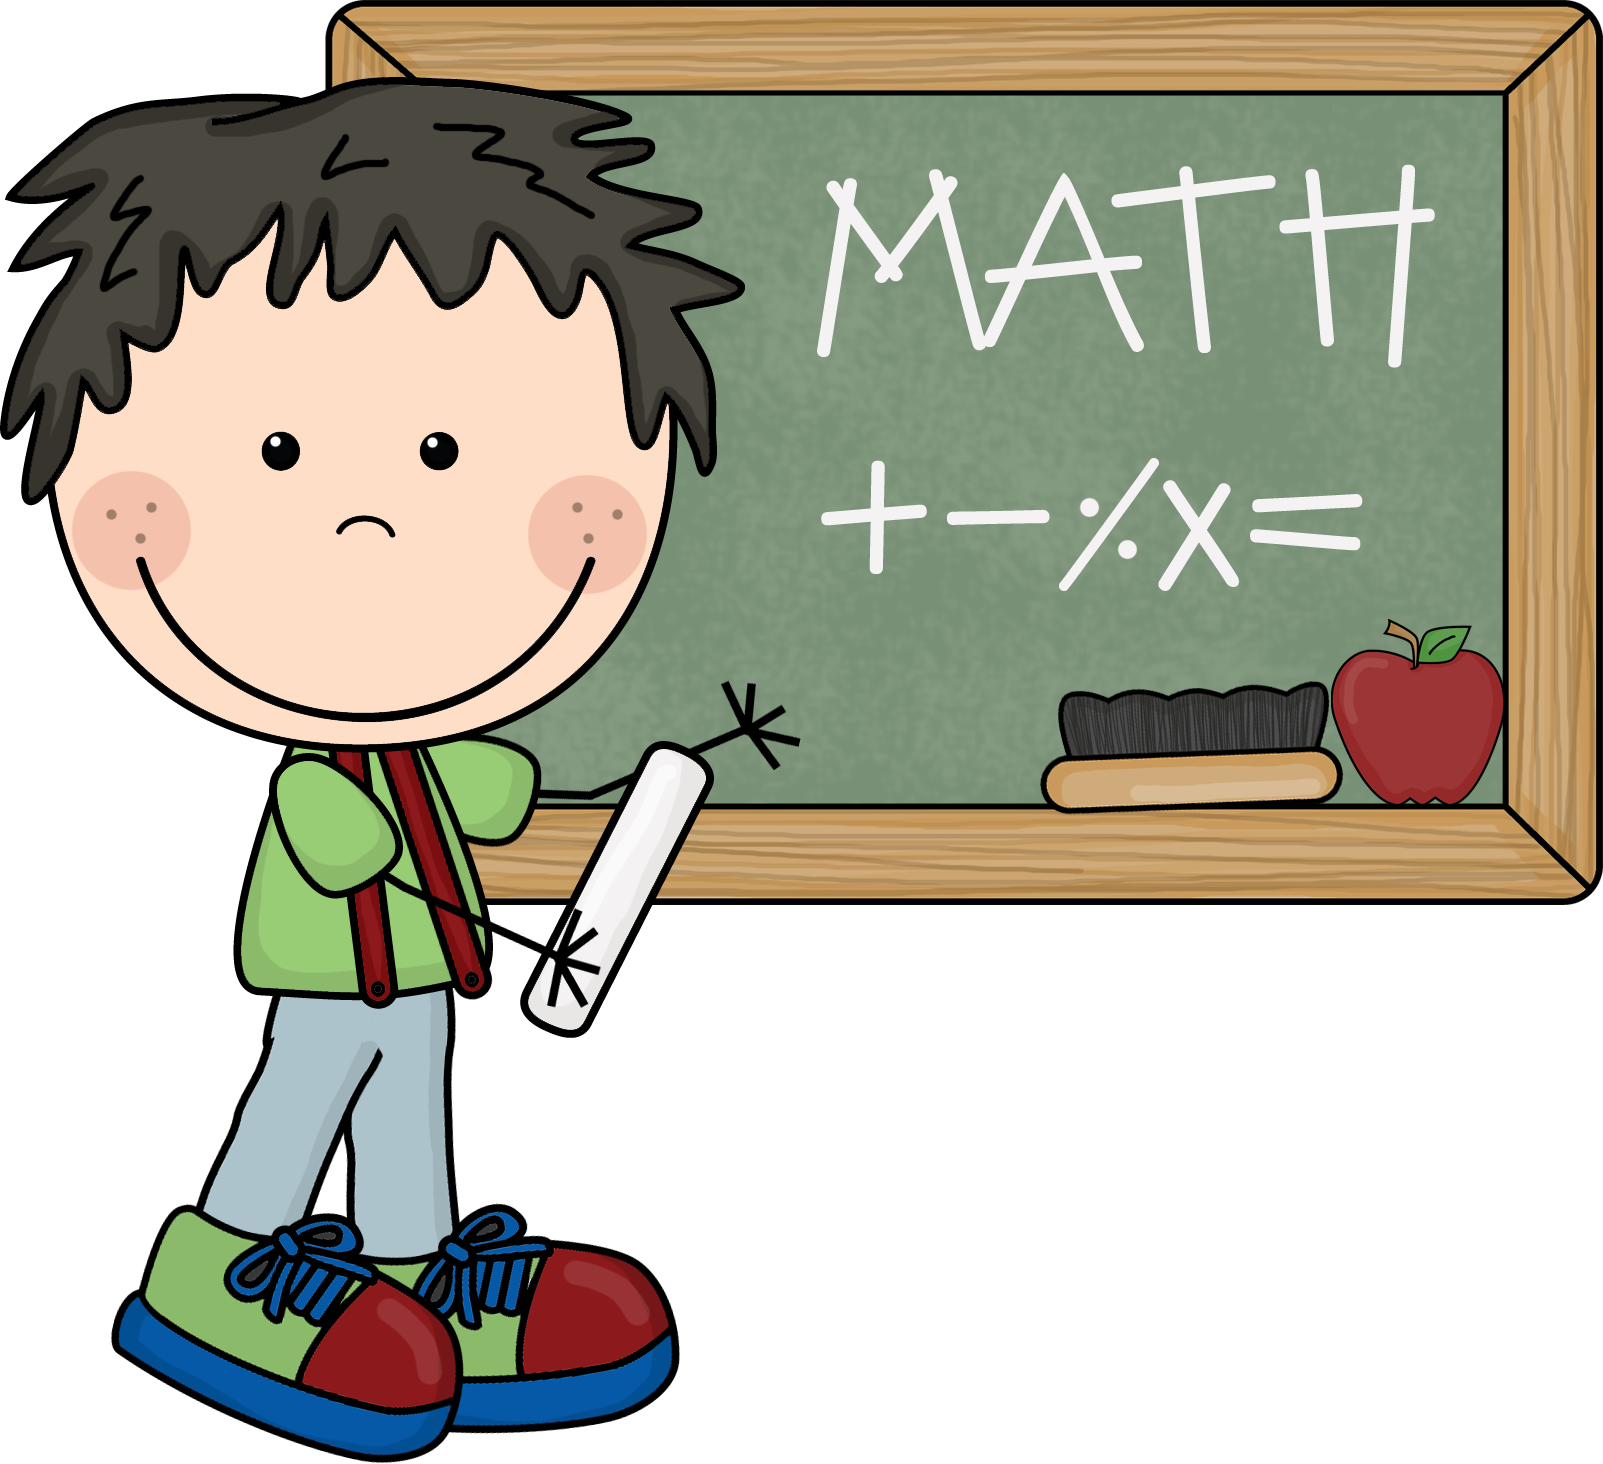 Lovesmath png imprimibles pinterest. Poetry clipart classroom